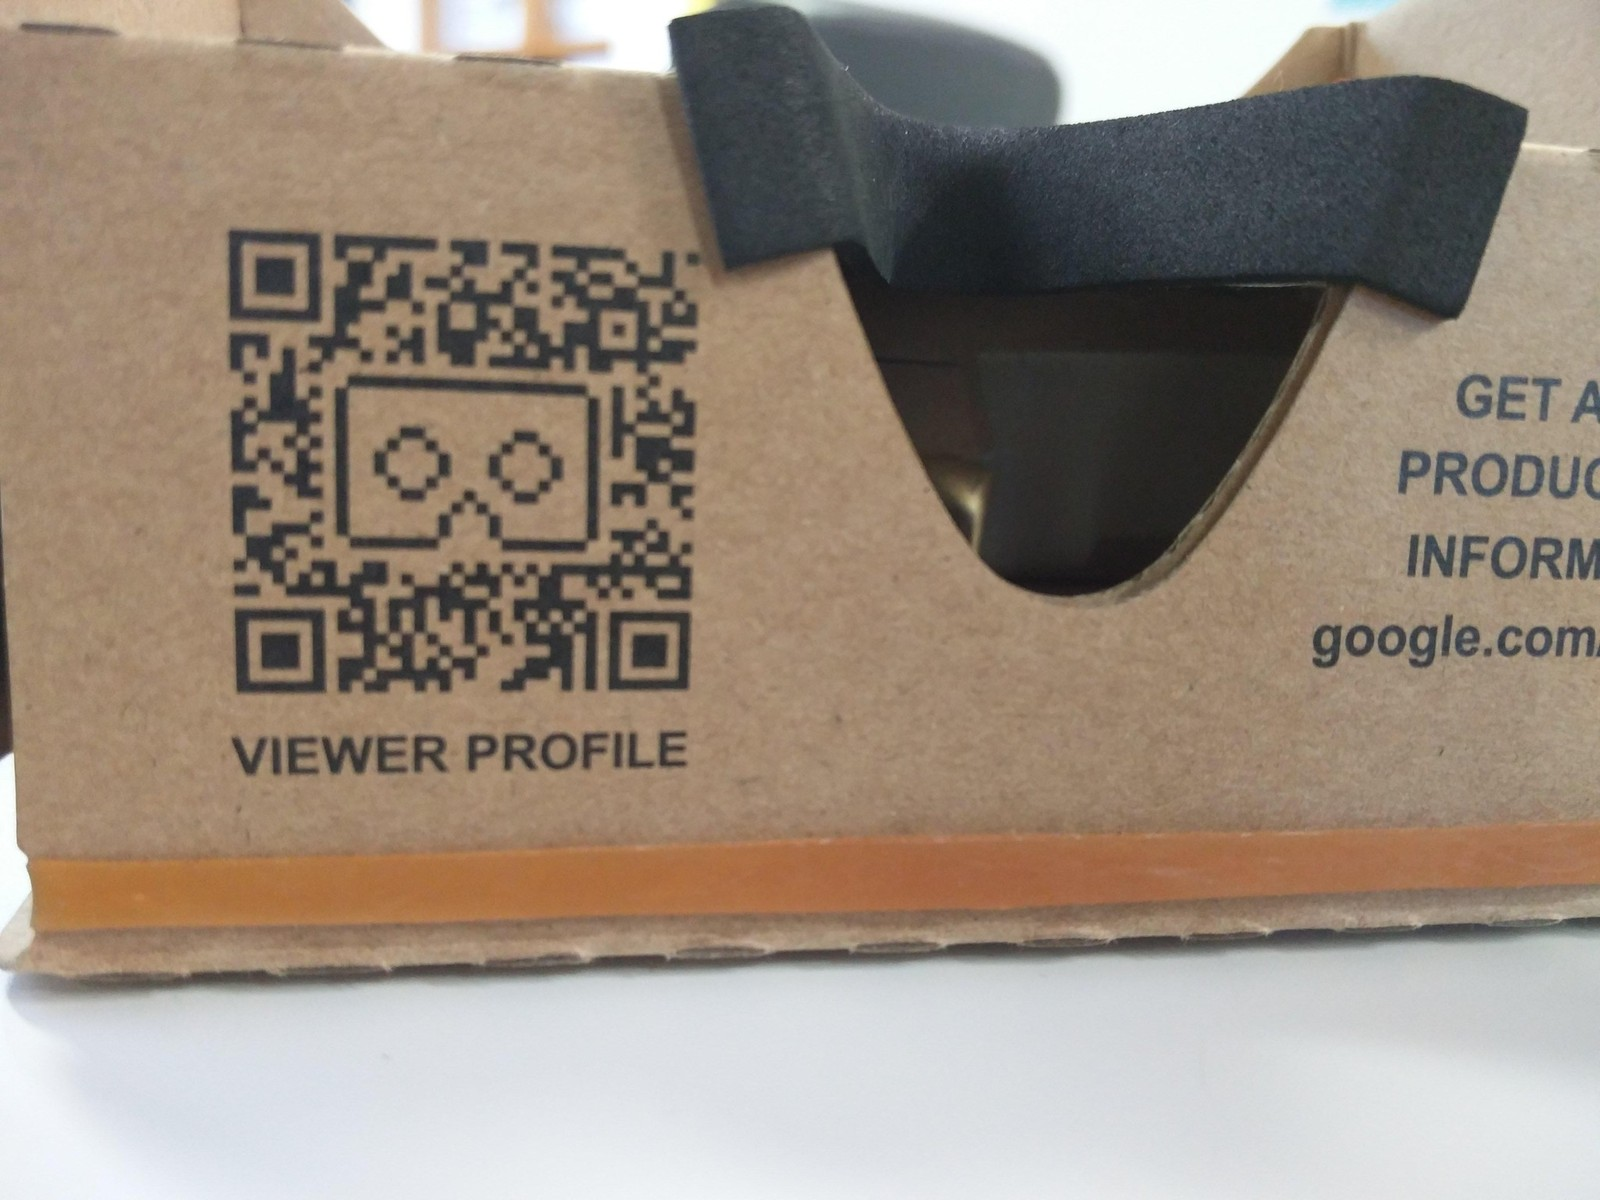 So Youve Lost Your Cardboard Qr Code Heres What To Do Vrheads